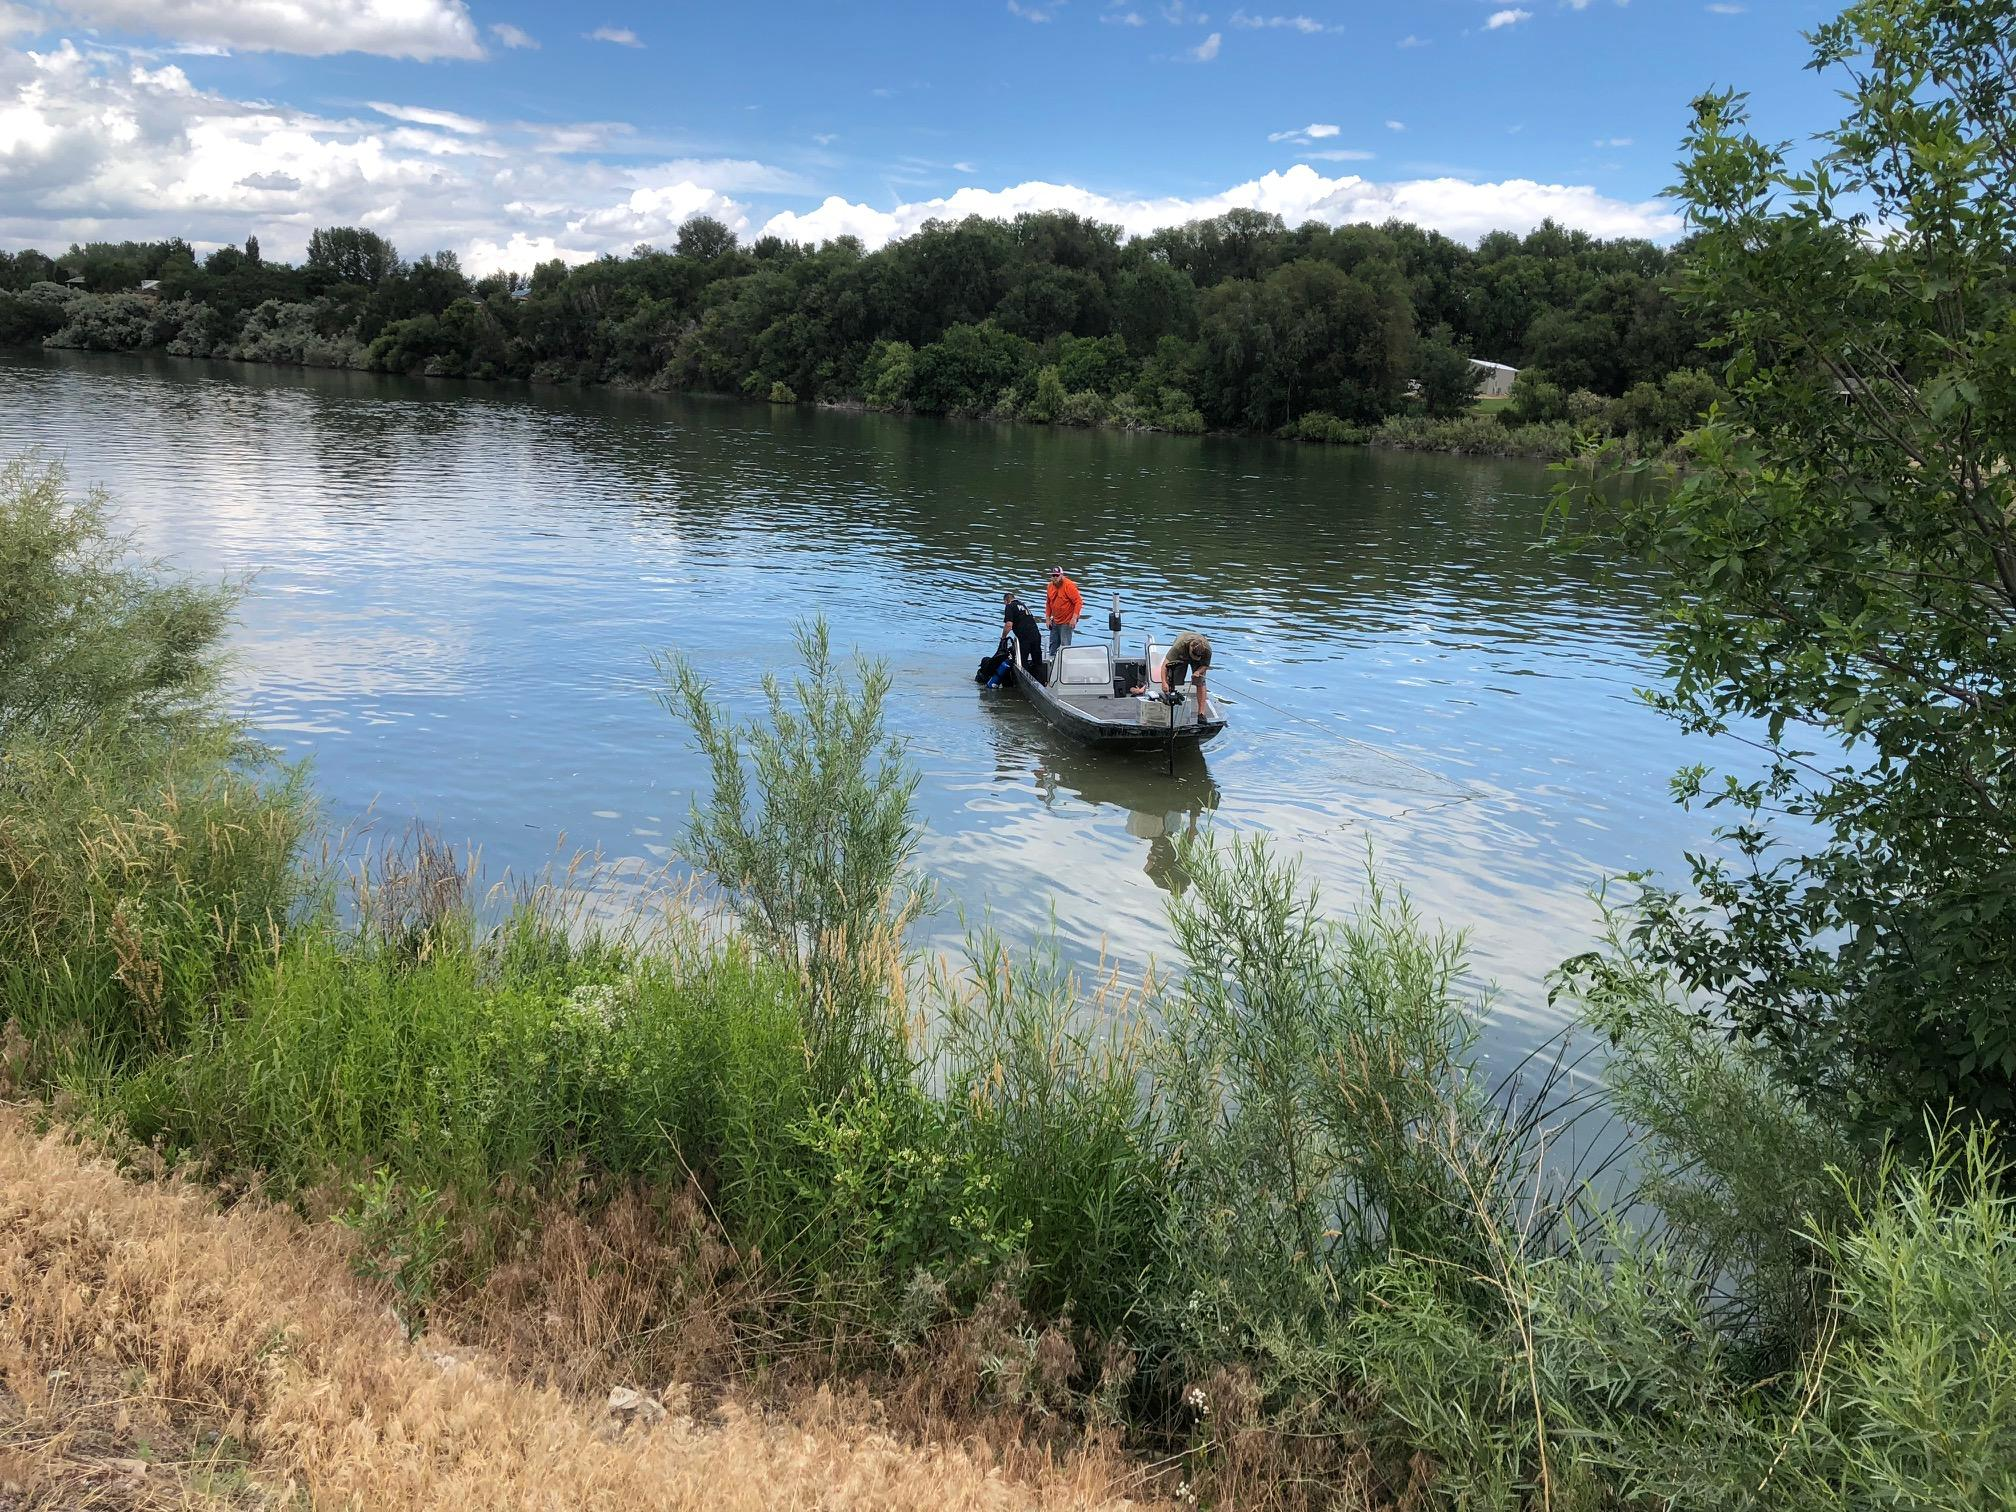 Sheriff deputies tell KBOI 2News that eight people were on the boat Wednesday night when the boat capsized. They received a 911 call around 10:30 p.m. (KBOI Staff Photo)